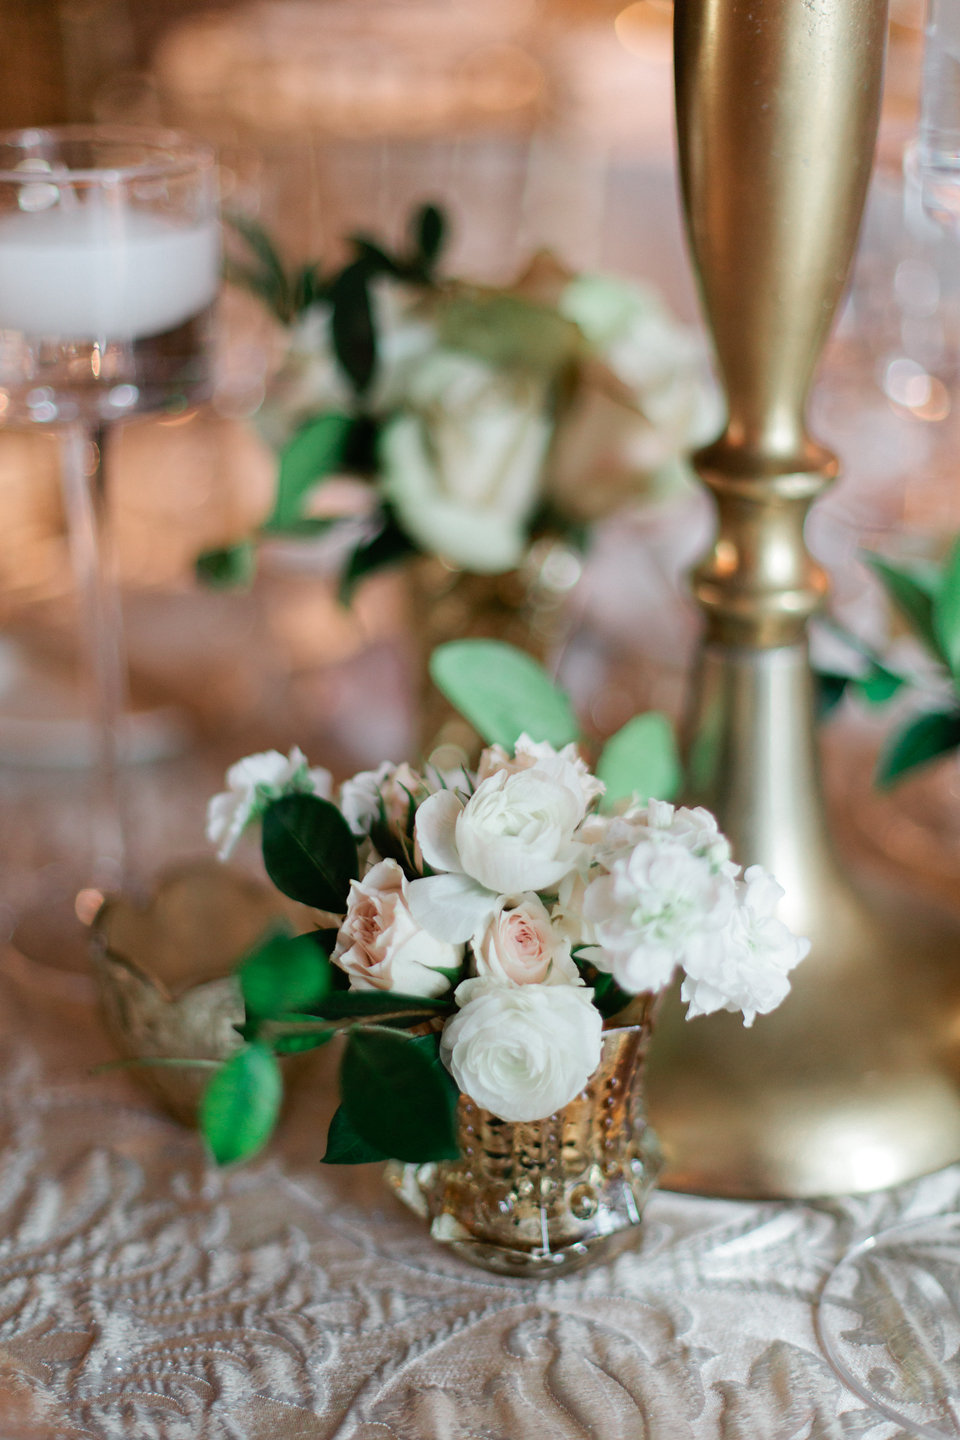 Centerpiece with Blush and Ivory Spray Roses  Blush Wedding at TPC Sawgrass Wedding Ponte Vedra Beach  Jacksonville Wedding Planner Blue Ribbon Weddings  Jacksonville Wedding Photographer Debra Eby Photography  Wedding Ceremony & Reception at TPC Sawgrass Jacksonville